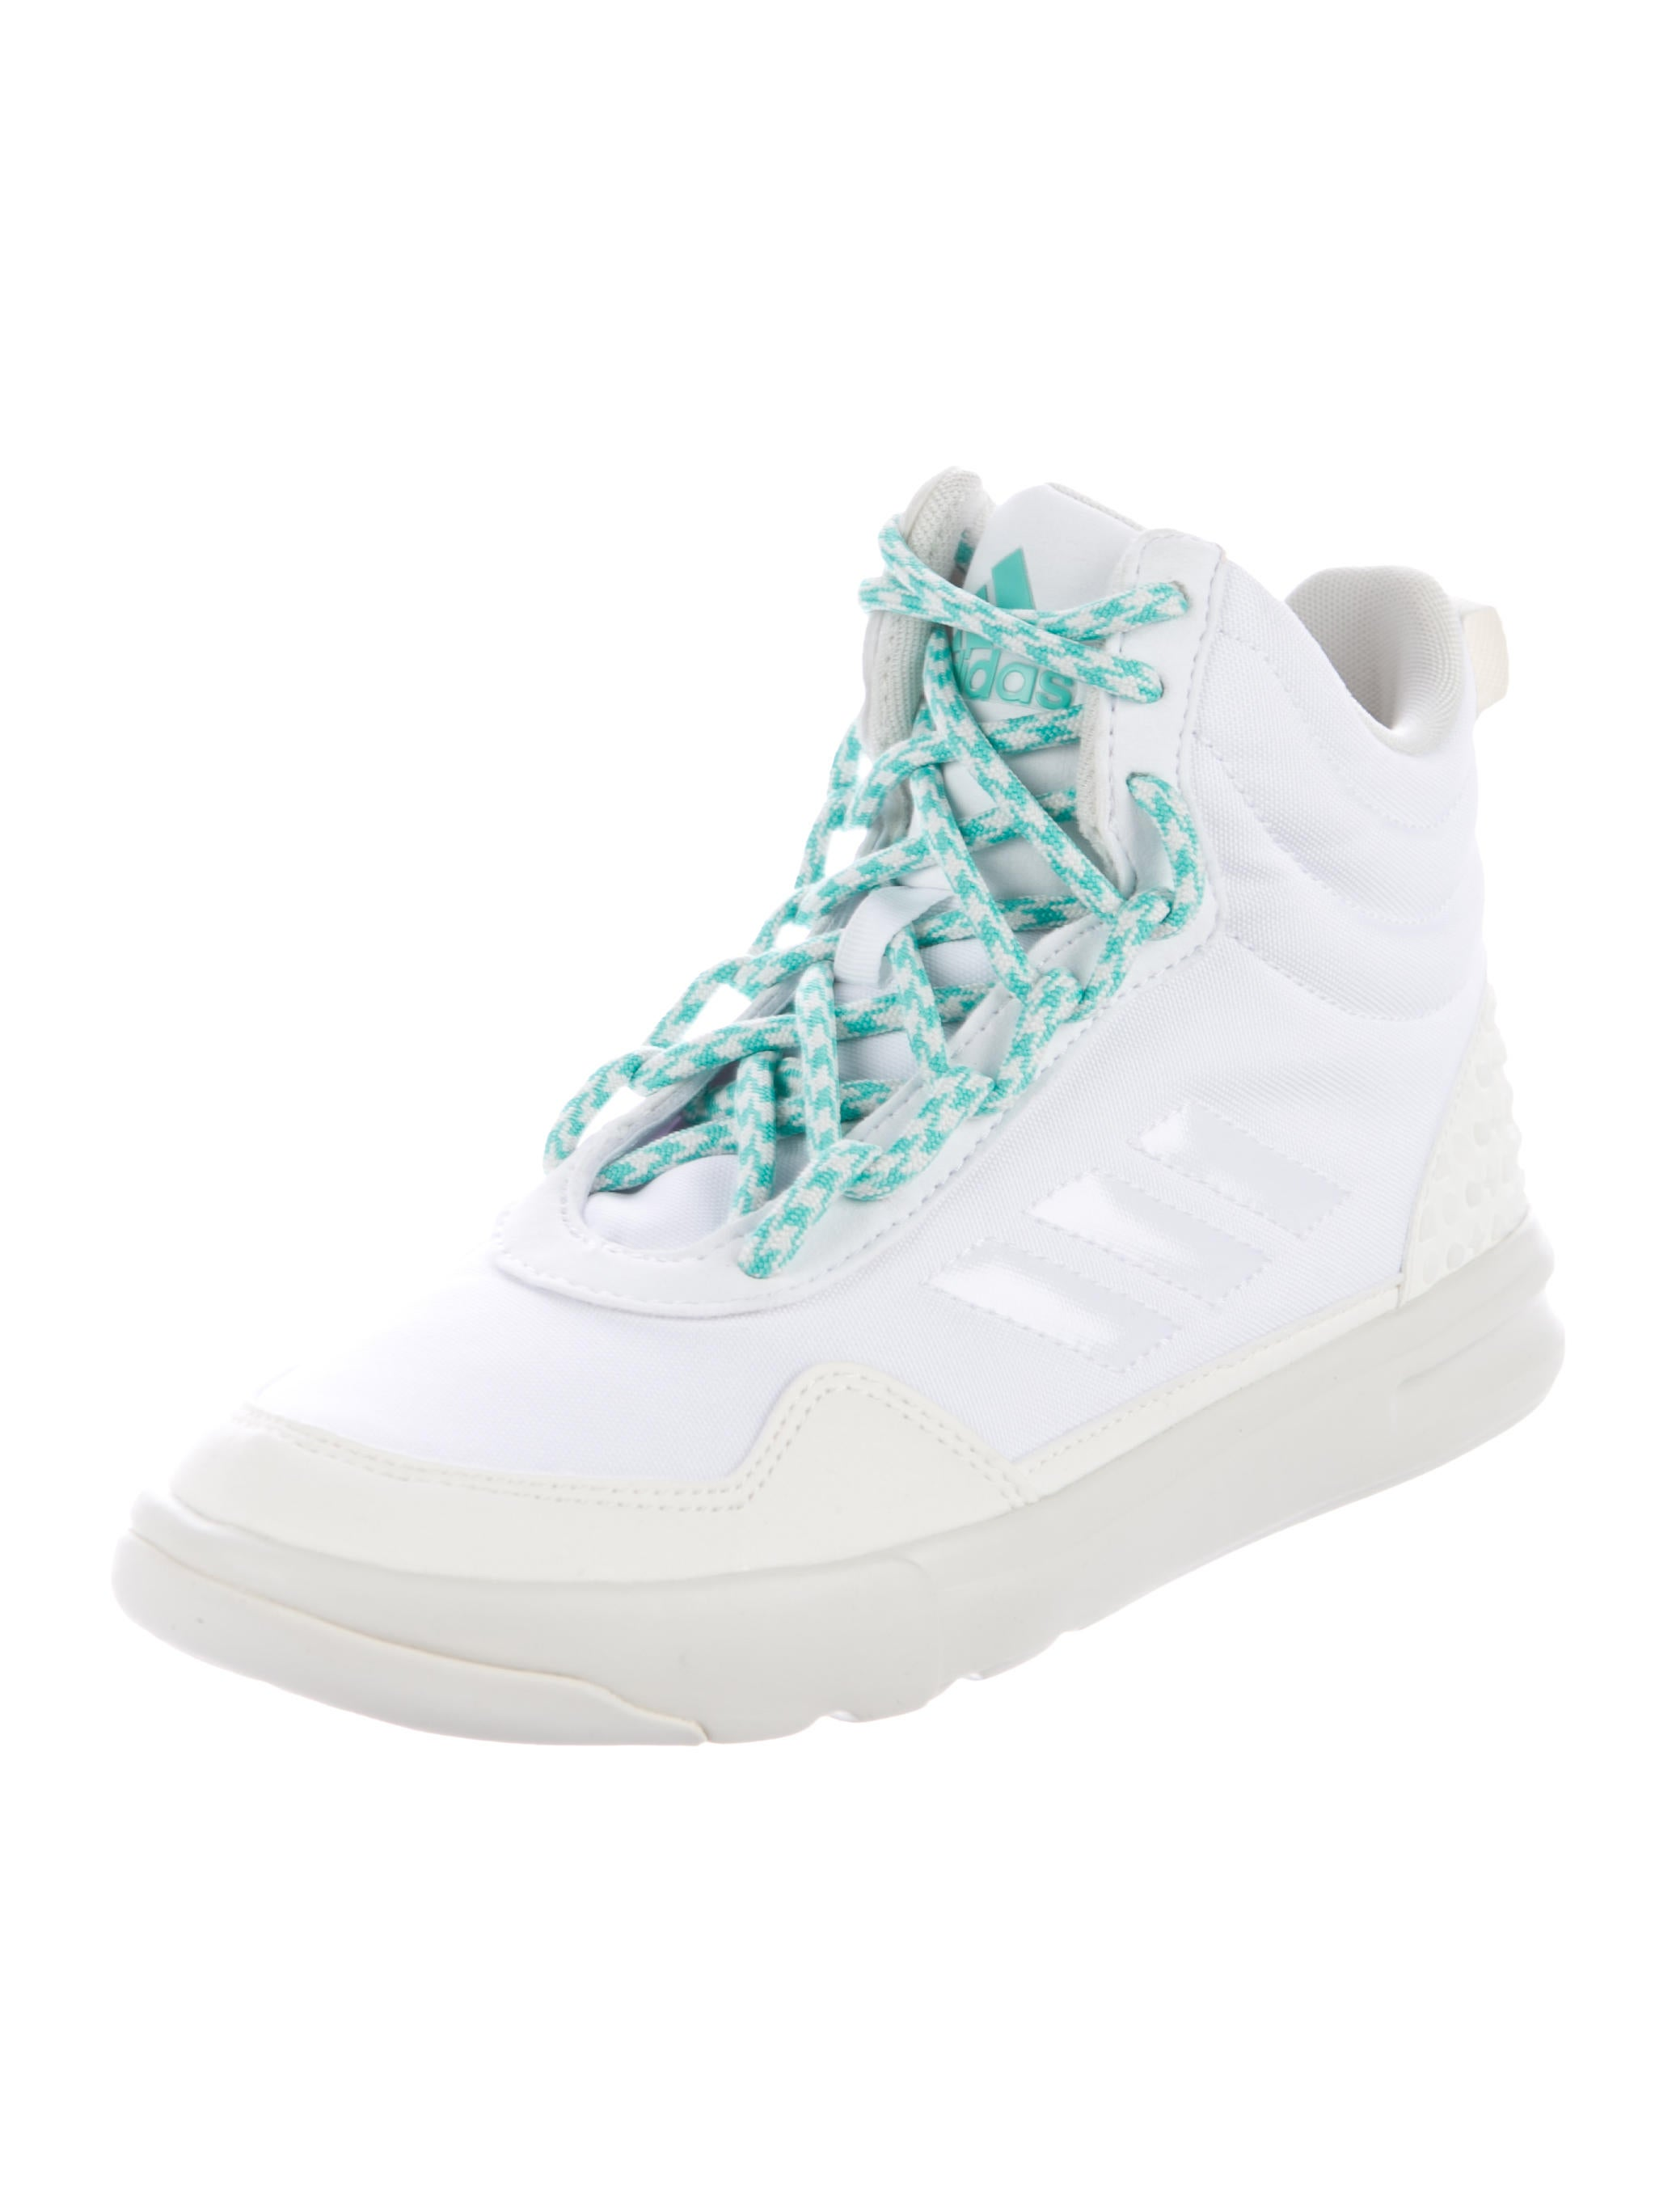 Stella McCartney for Adidas Irana High-Top Sneakers w/ Tags cheap geniue stockist EA43in8